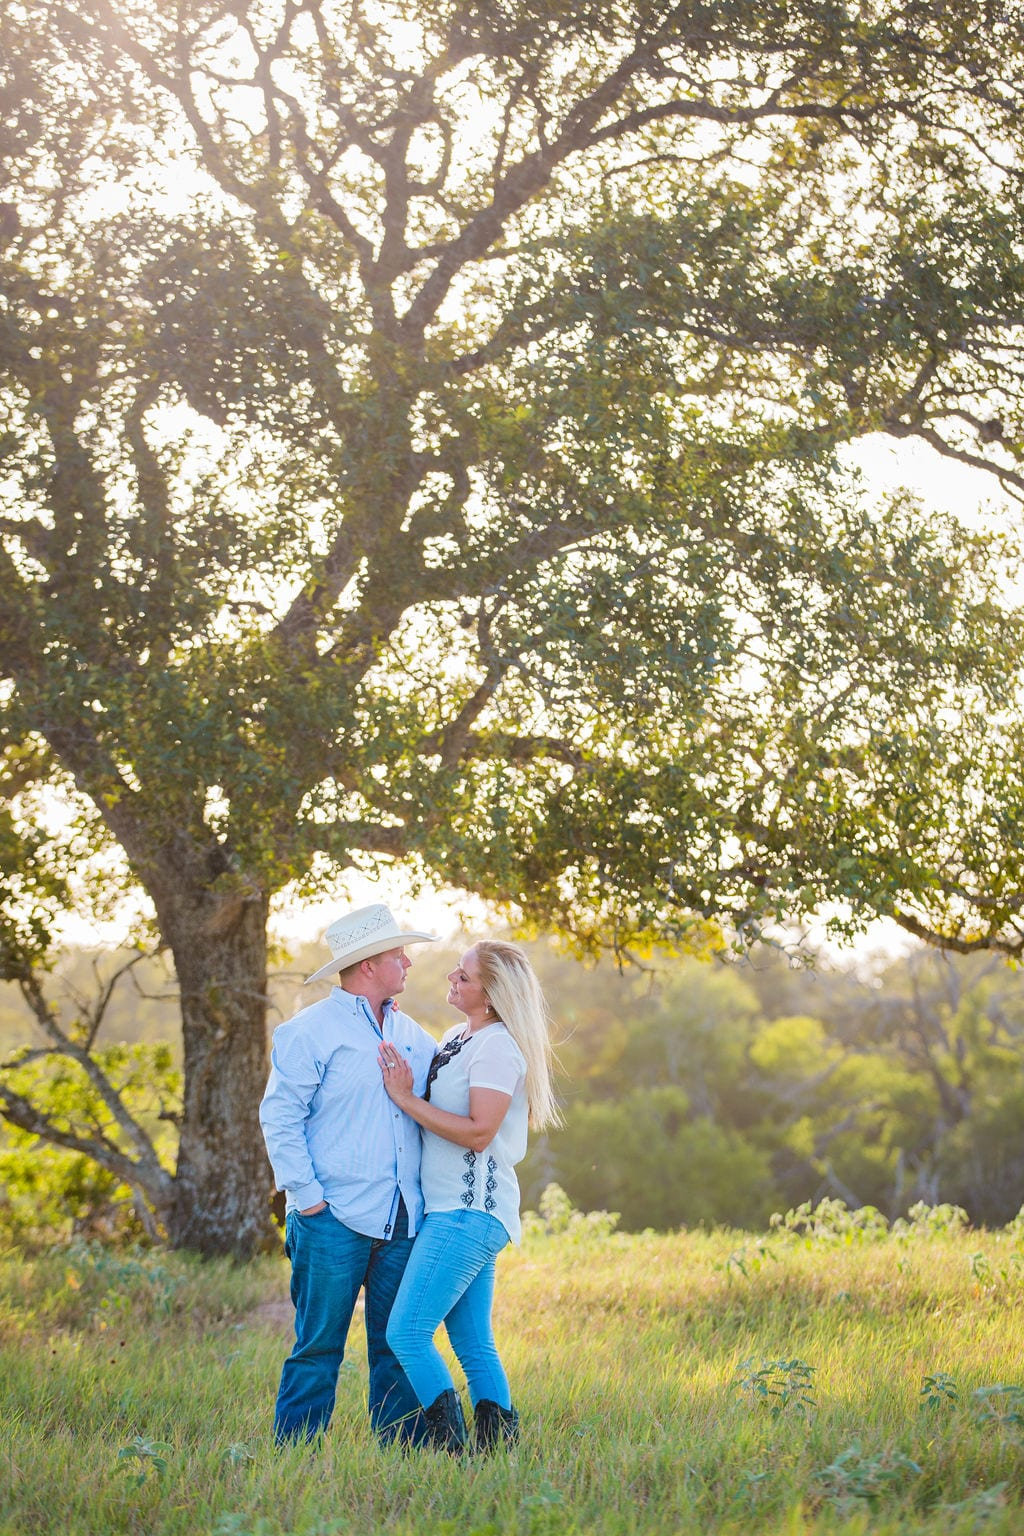 Whitney and Craig's ranch Engagement session dreamy at the tree